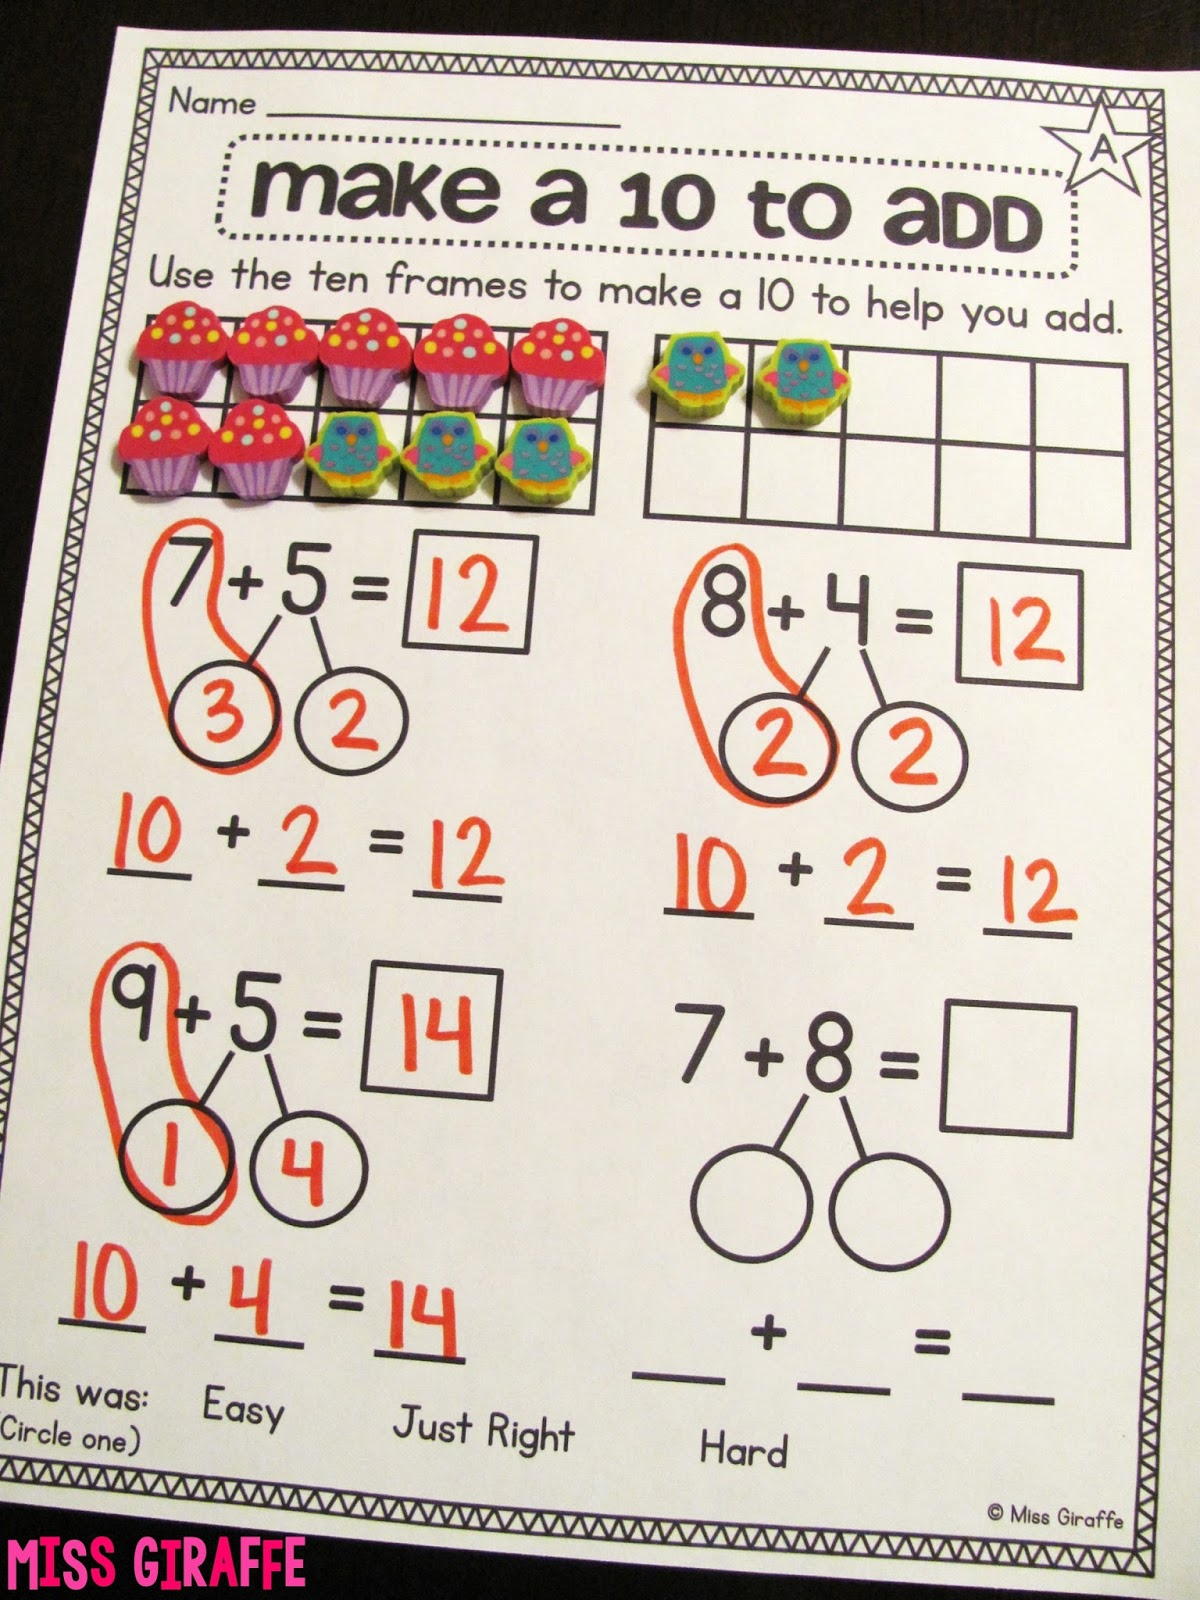 no matter what level worksheet they do have them show their work where they decompose the numbers circle the numbers to compose a 10 etc so you can see